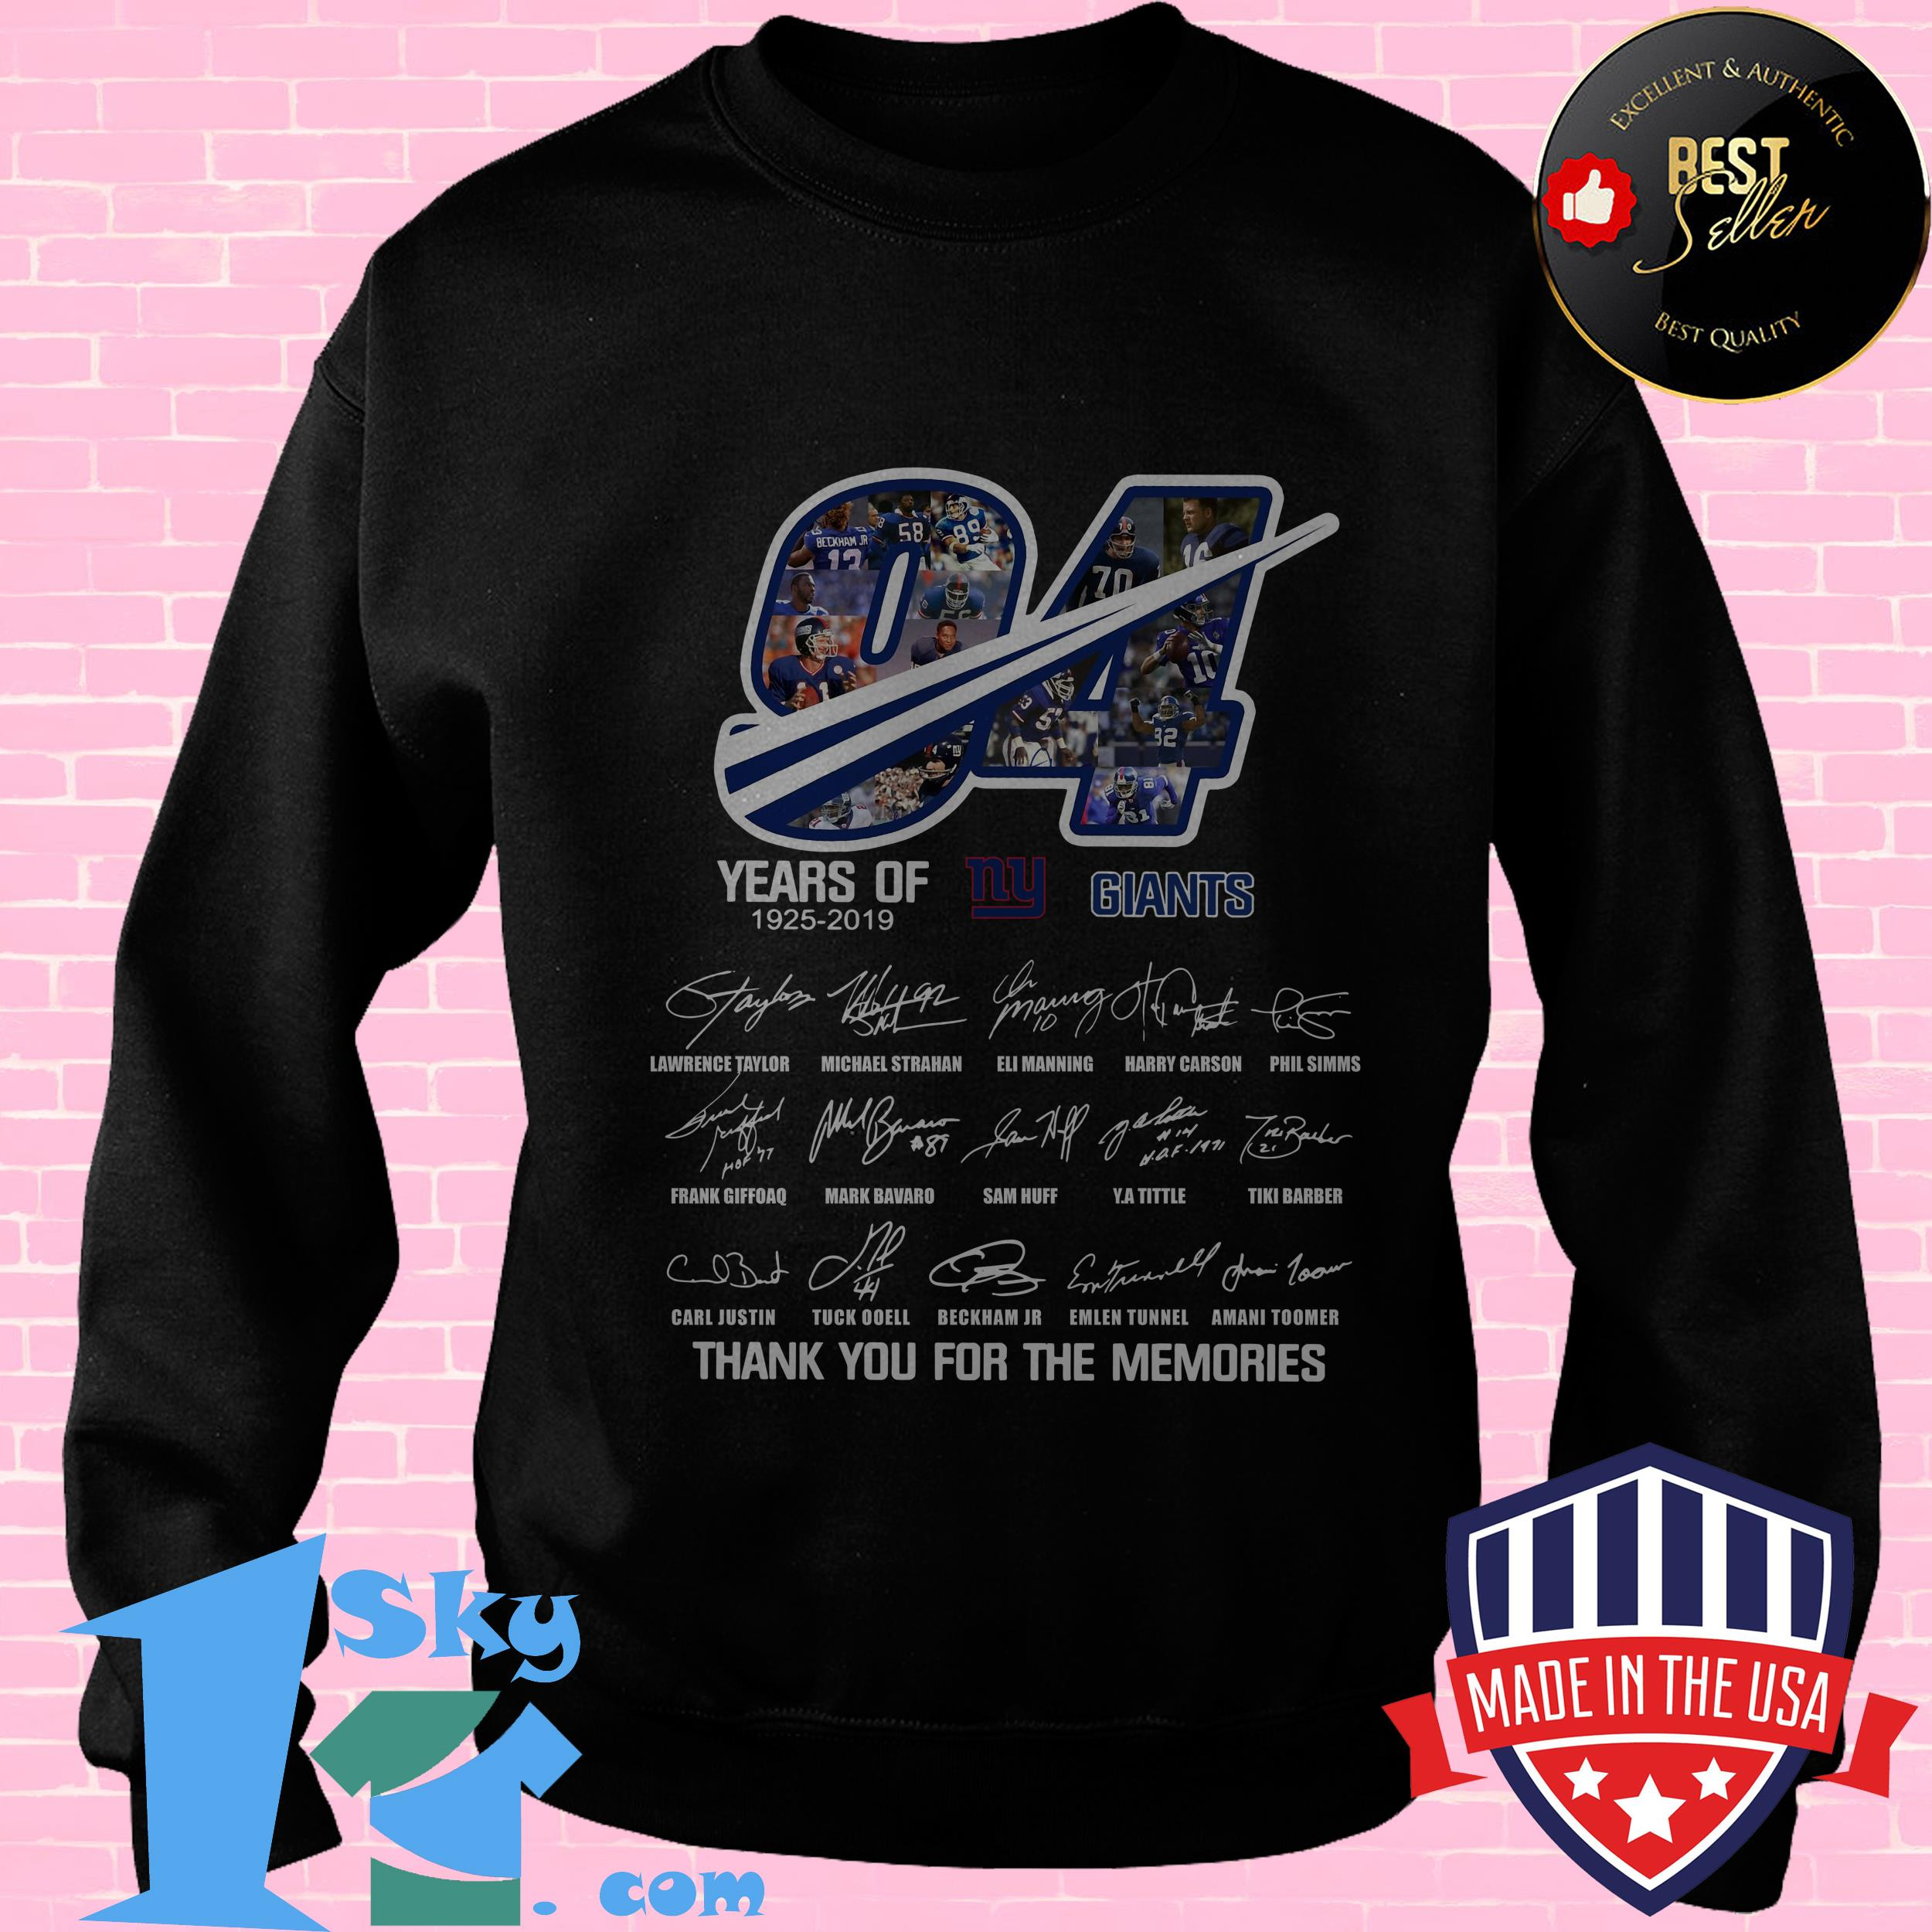 94 years of ny giants 1925 2019 thank you for the memories signature sweatshirt - 94 Years Of NY Giants 1925 2019 Thank you For the Memories Signature shirt